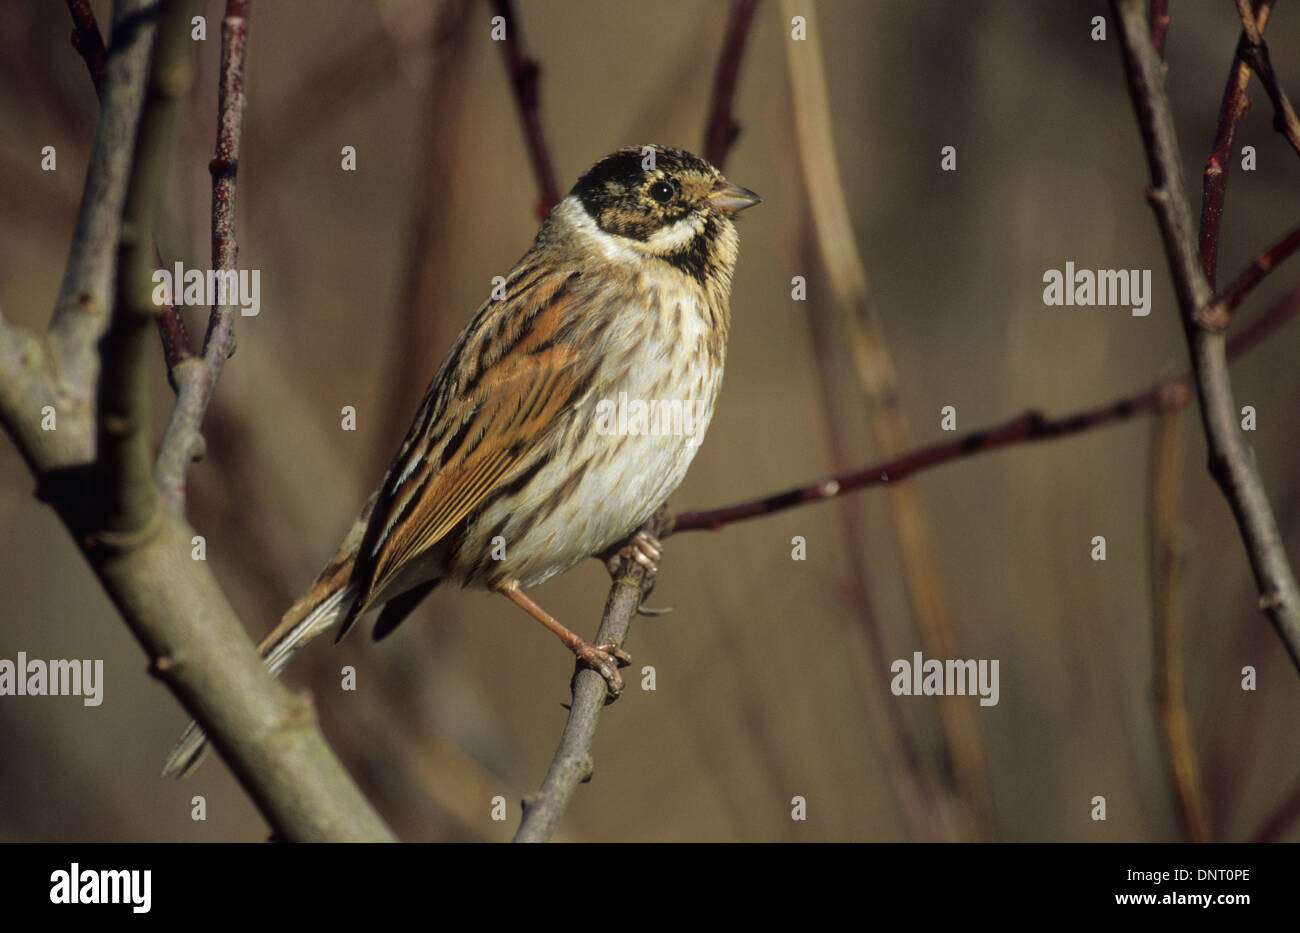 Reed Bunting Emberiza Schoeniclus Adult Male In Winter Plumage Stock Photo Alamy